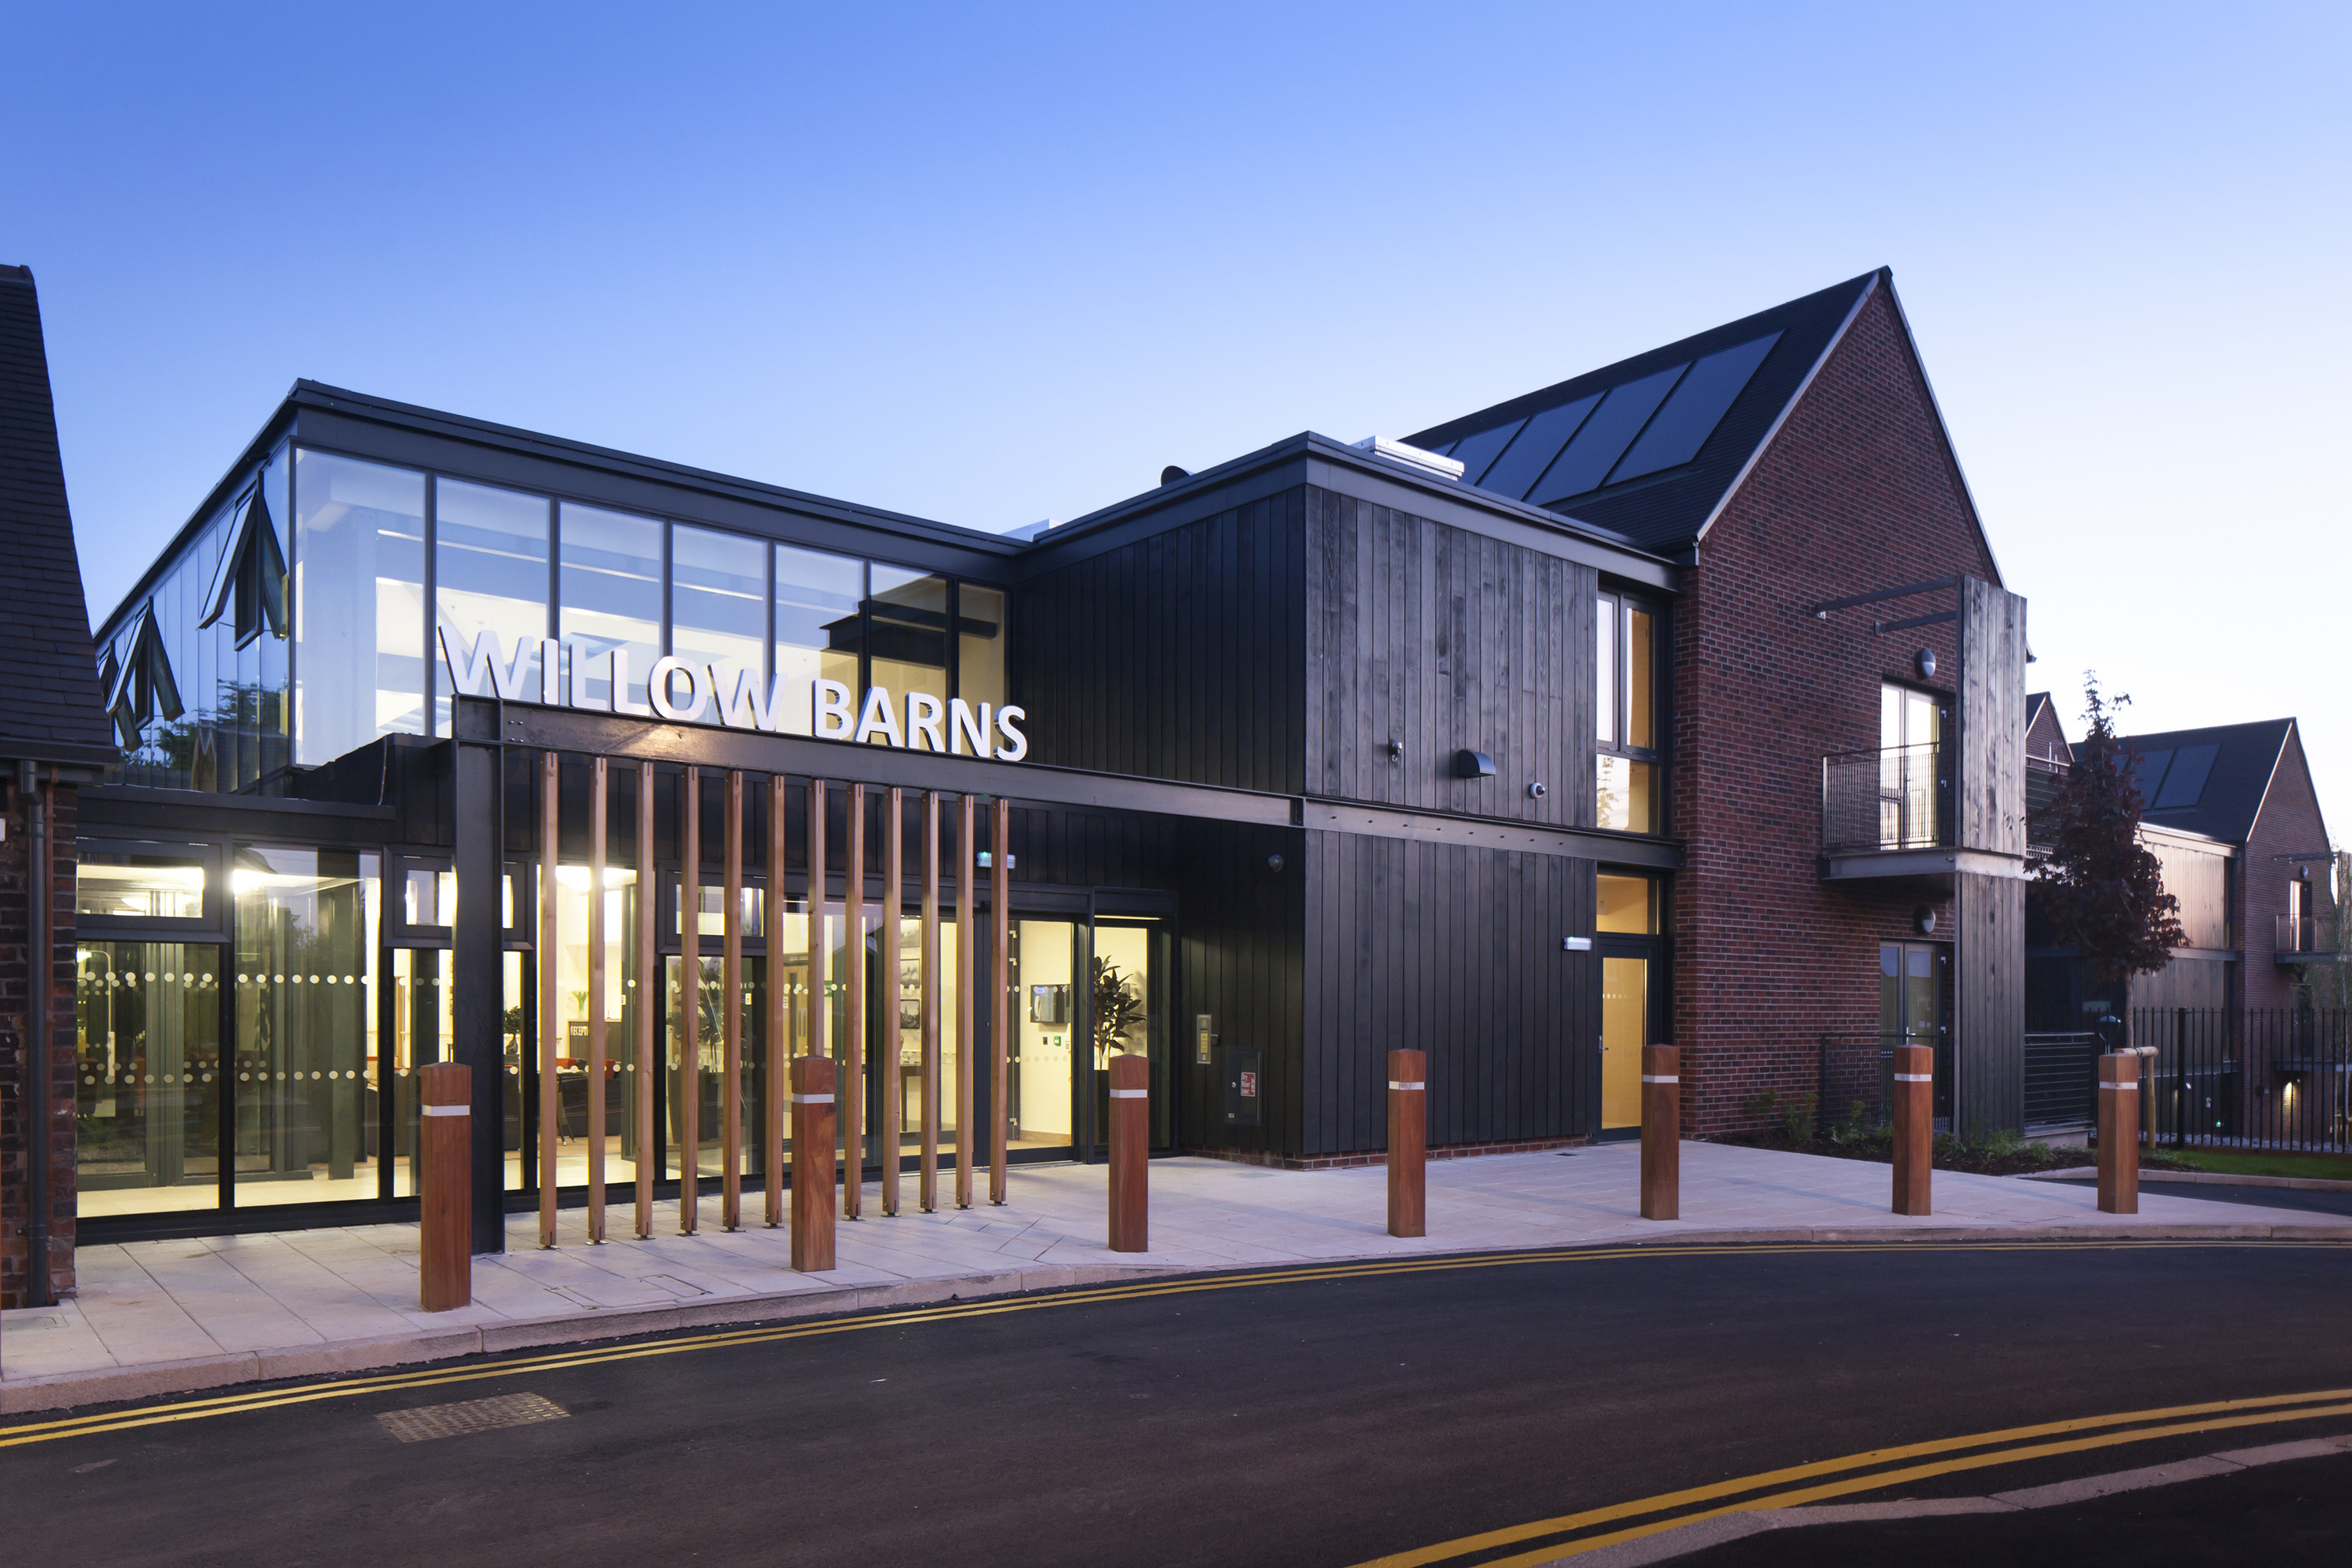 PRP's Willow Barns Retirement Living Project Wins the HAPPI Completed Award at the Housing Design Awards